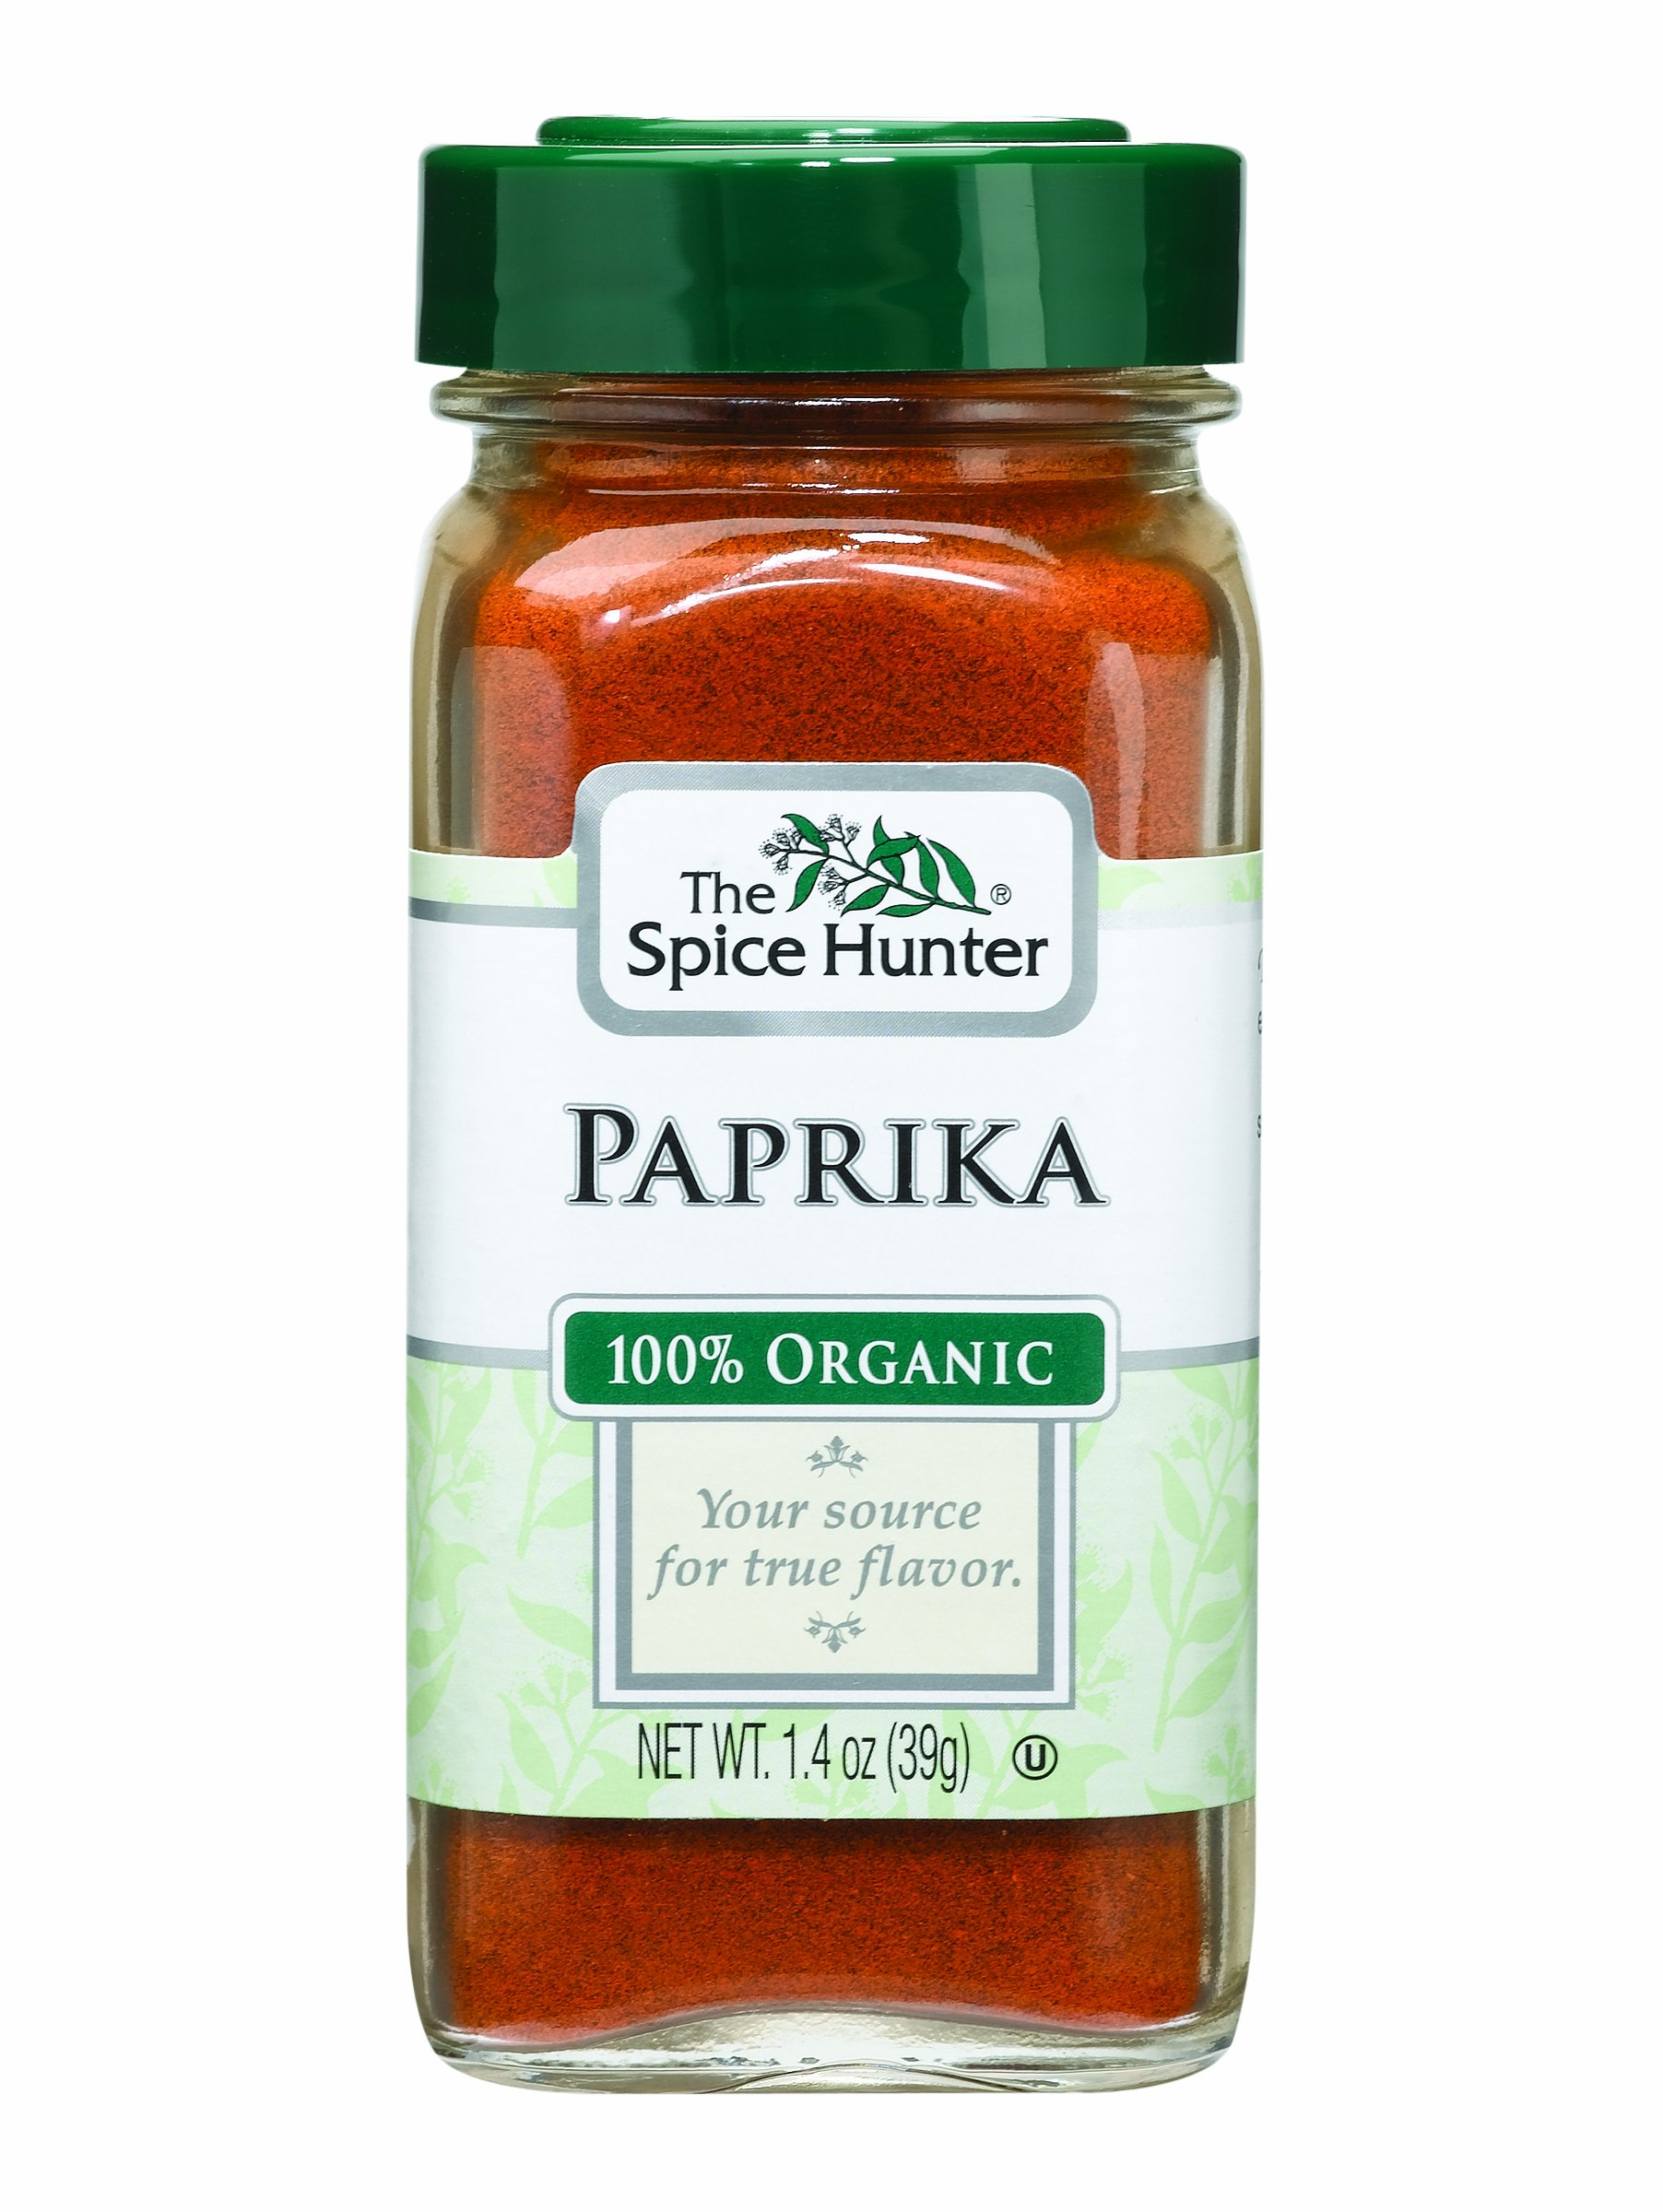 The Spice Hunter Paprika, Ground, Organic, 1.4-Ounce Jars (Pack of 6)